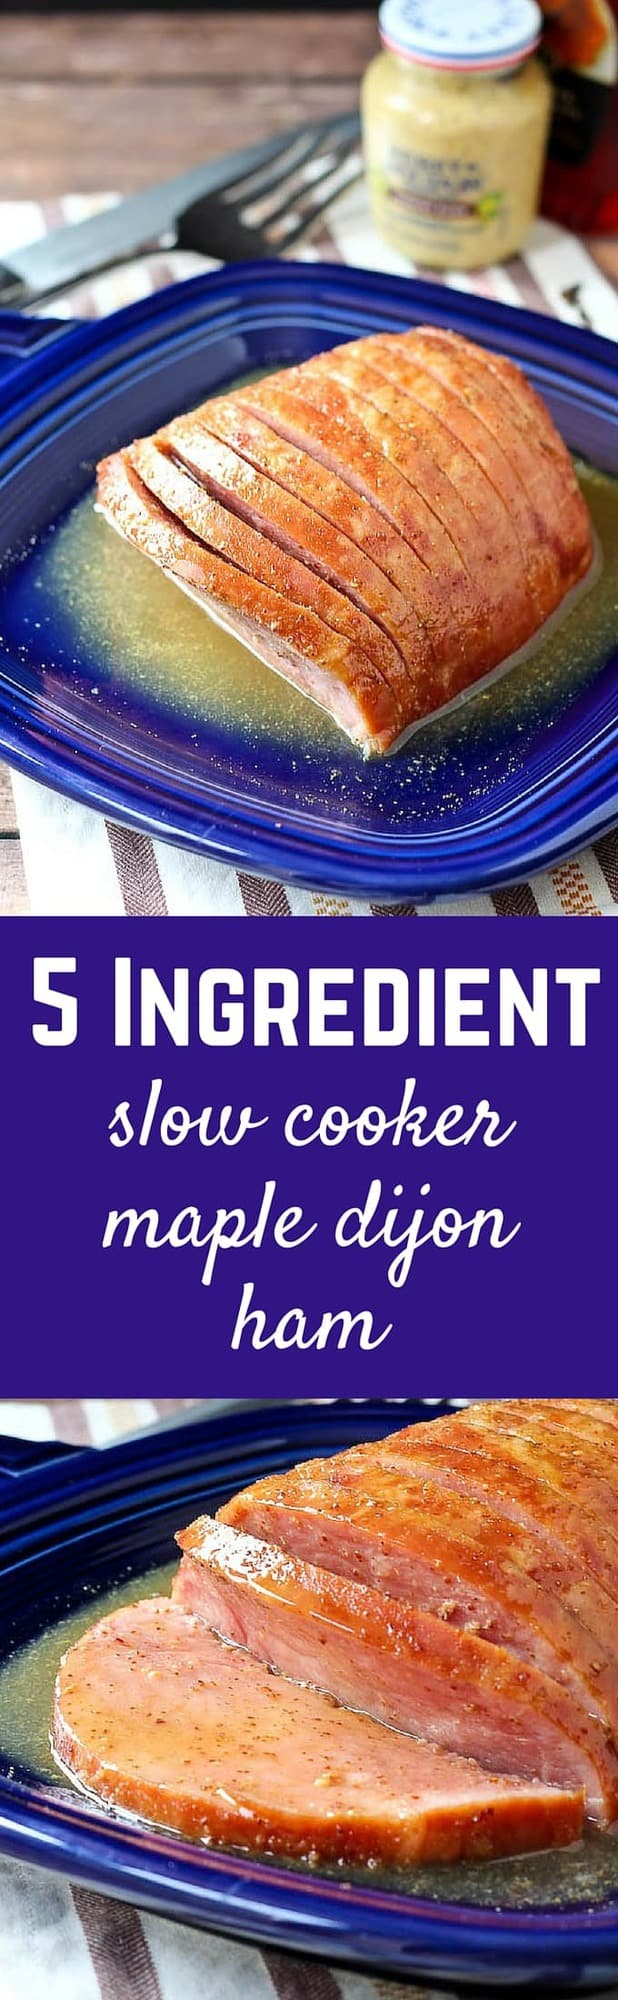 Whether you're entertaining or just looking for an easy dinner with great leftovers - this maple dijon ham is for you. Bonus: SLOW COOKER. Totally hands-off! Get the easy recipe on RachelCooks.com!